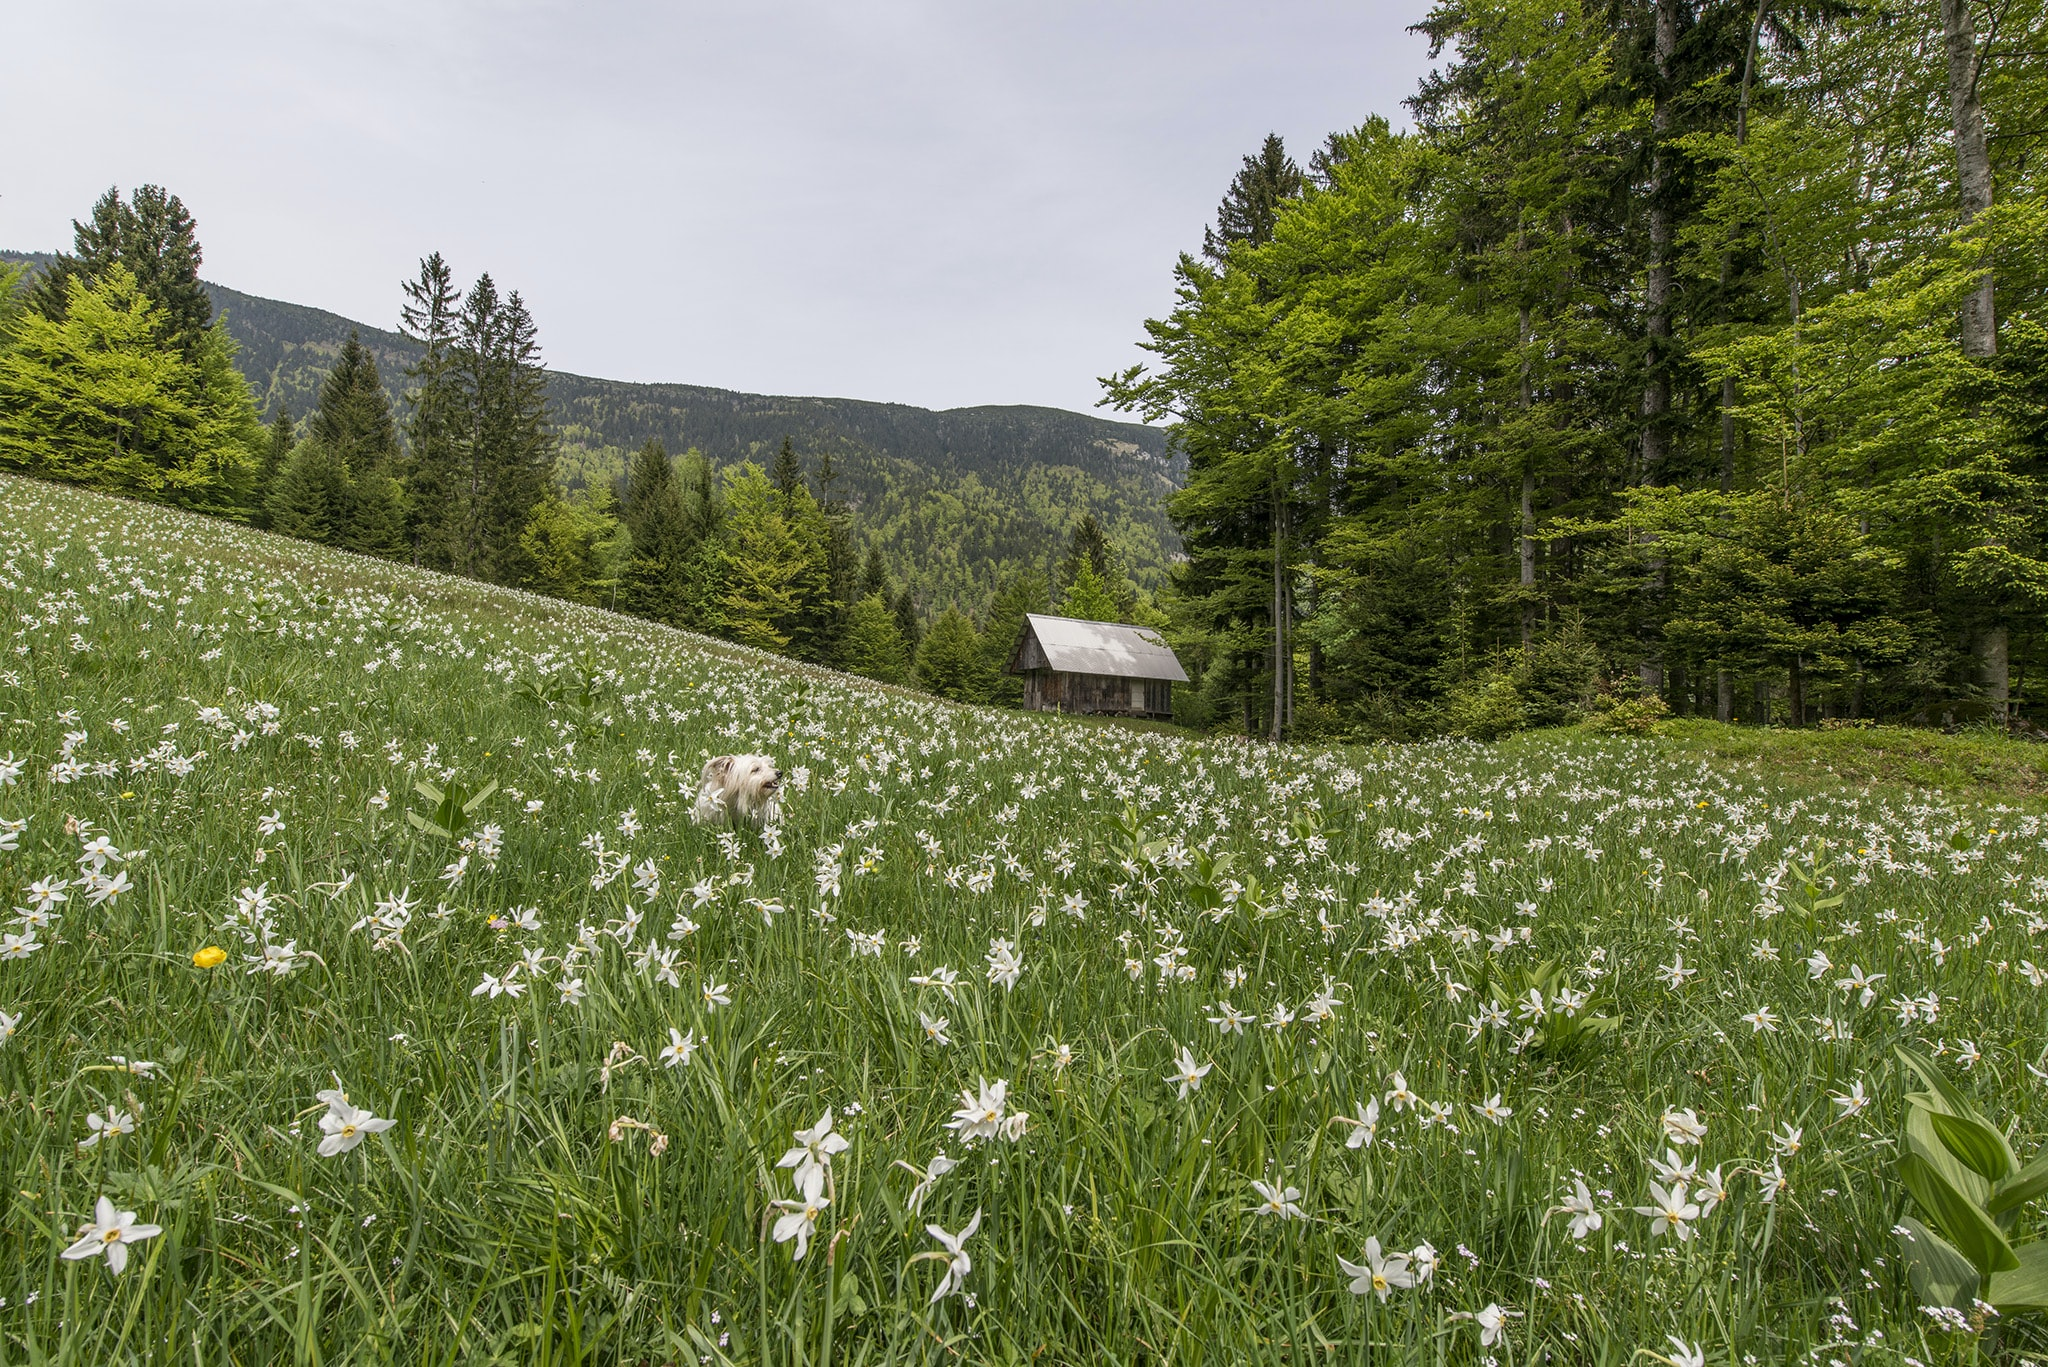 A dog in a meadow full of white flowers with a wooden cabin at the back